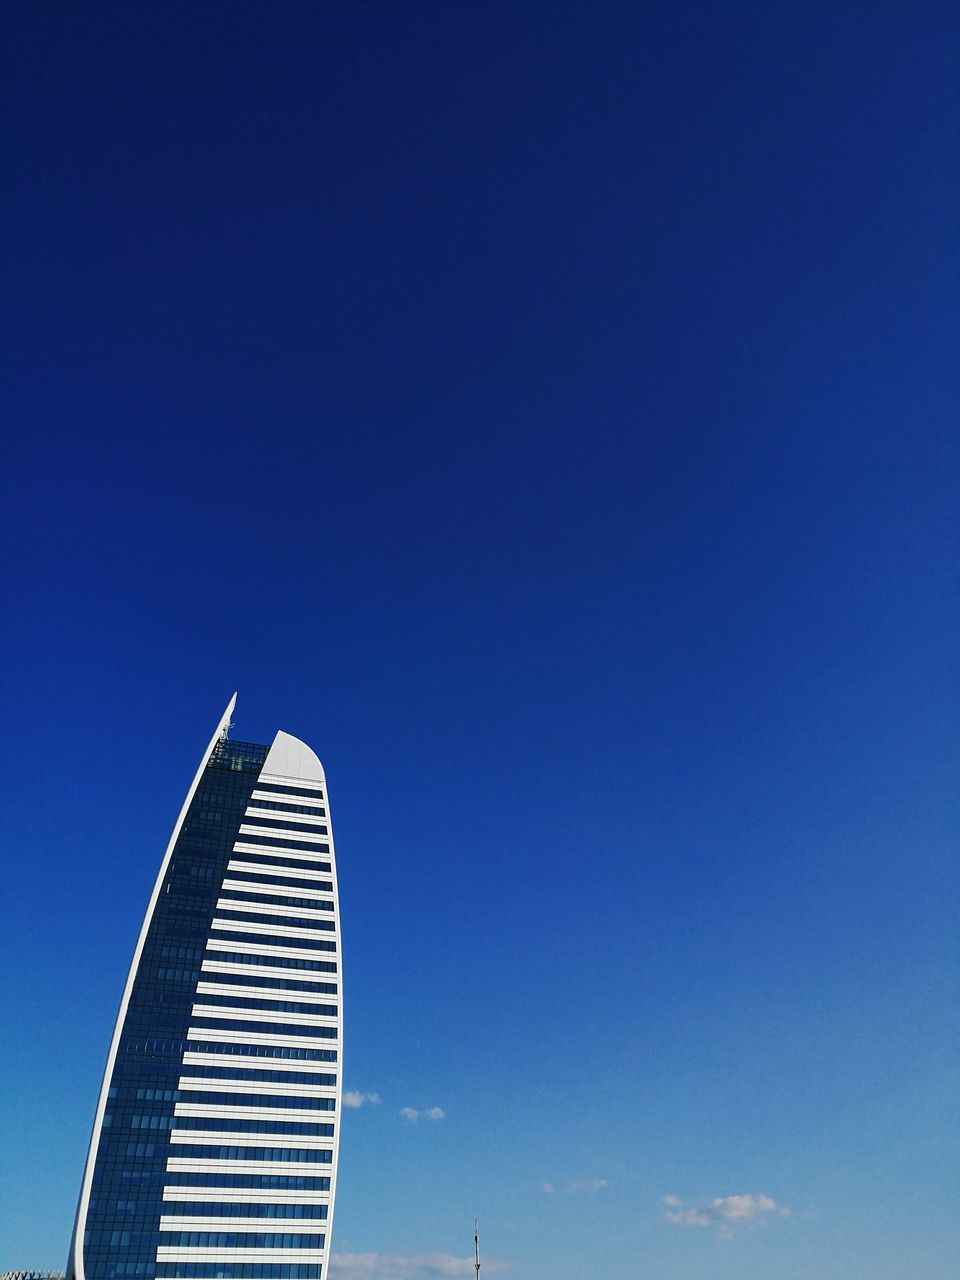 blue, copy space, clear sky, architecture, low angle view, sky, built structure, no people, day, outdoors, building exterior